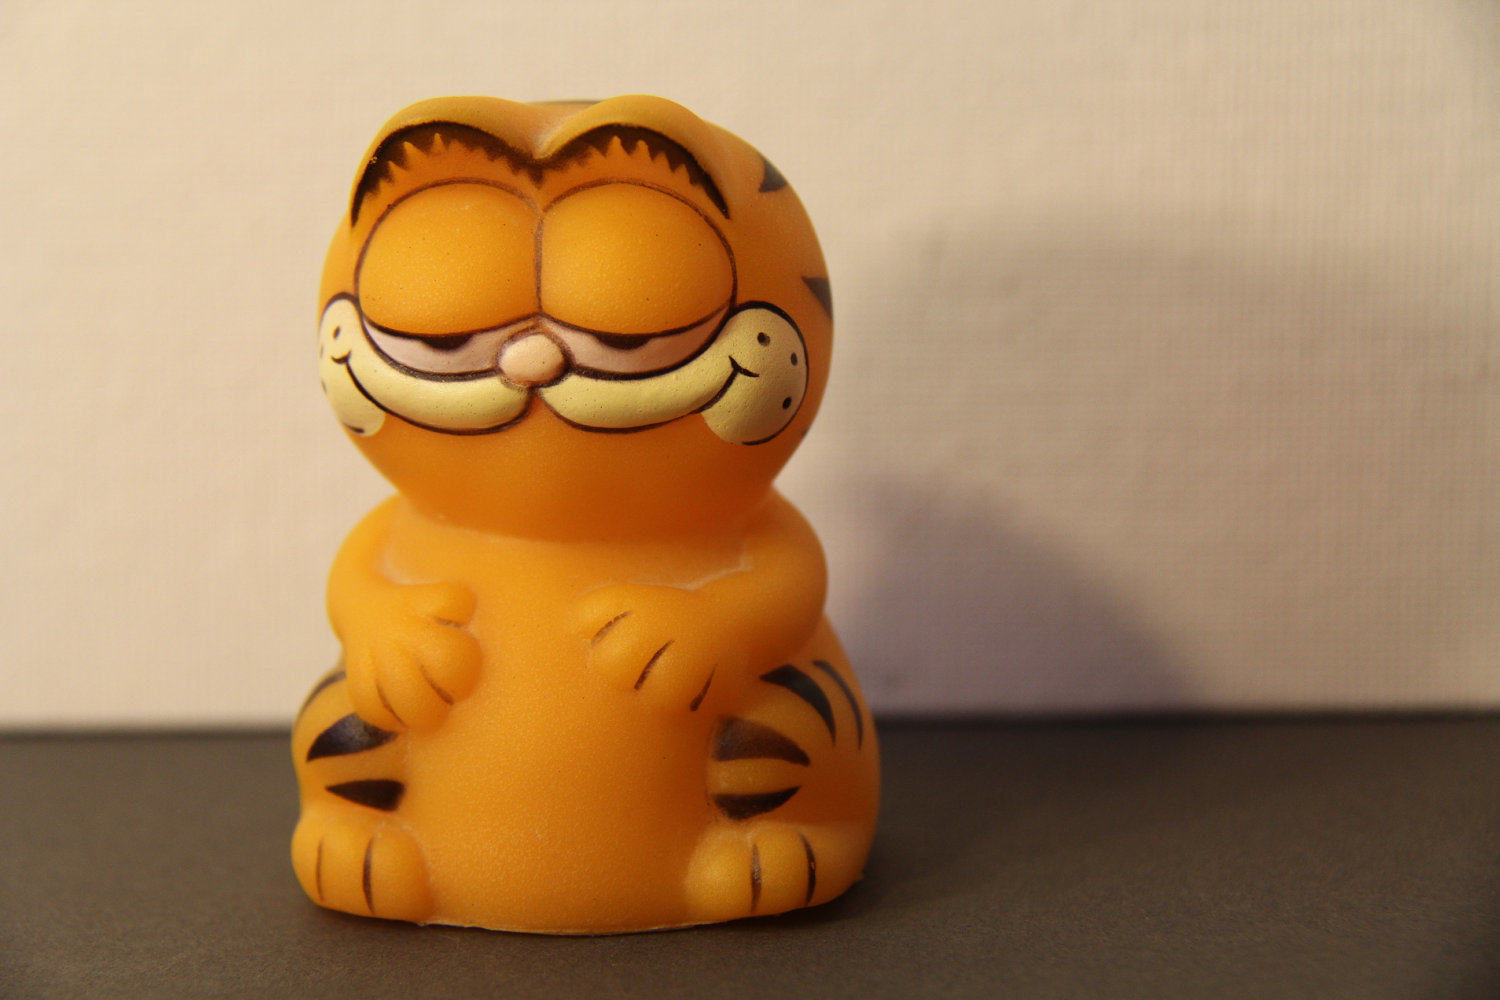 And here was *my* Garfield pencil topper who had one pimped out pad in 1984.